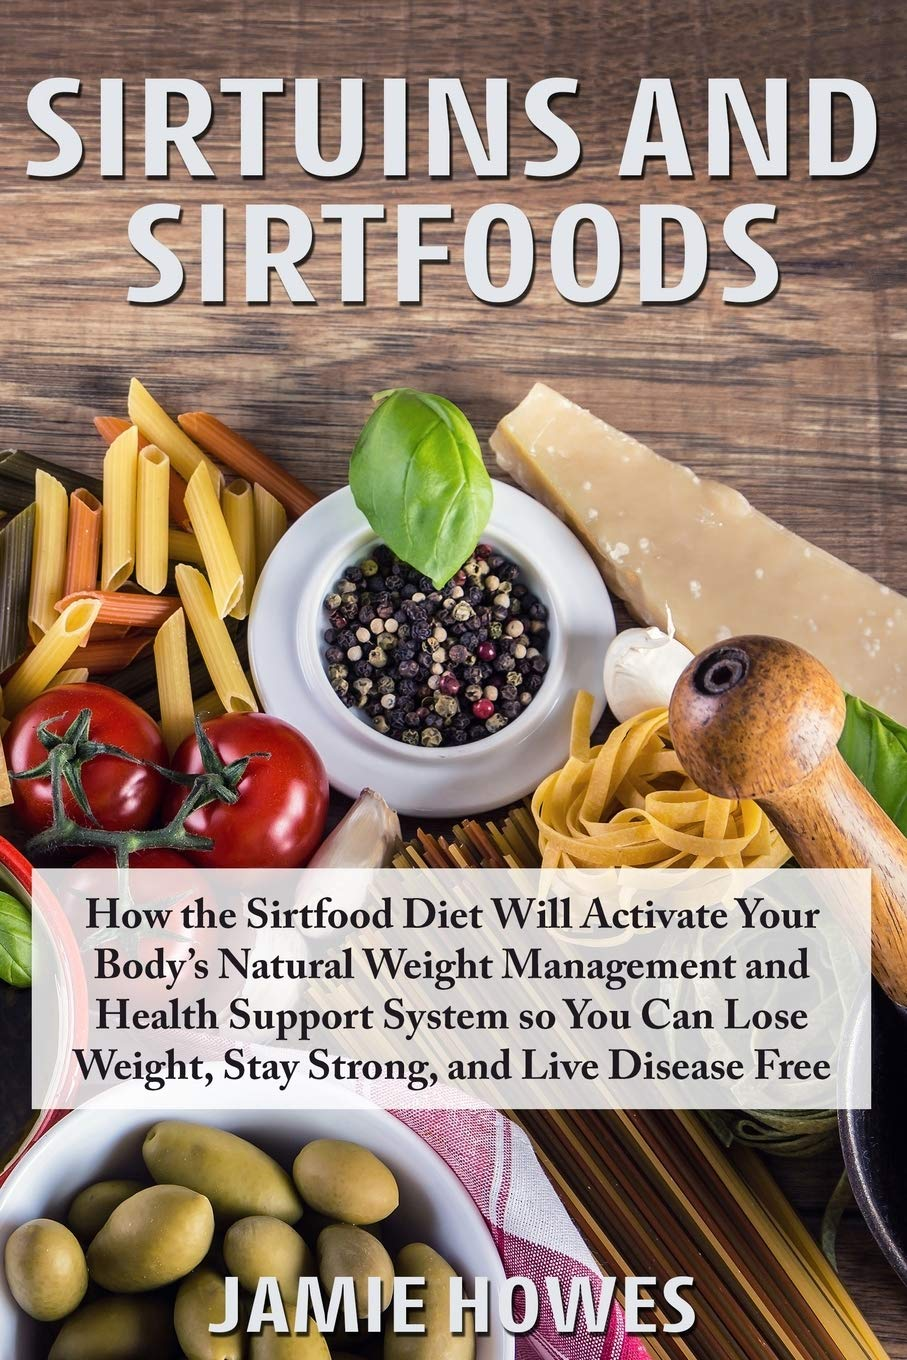 Sirtuins and Sirtfoods: How the Sirtfood Diet Will Activate Your Body's Natural Weight Management and Health Support System so You Can Lose Weight, Stay Strong, and Live Disease Free